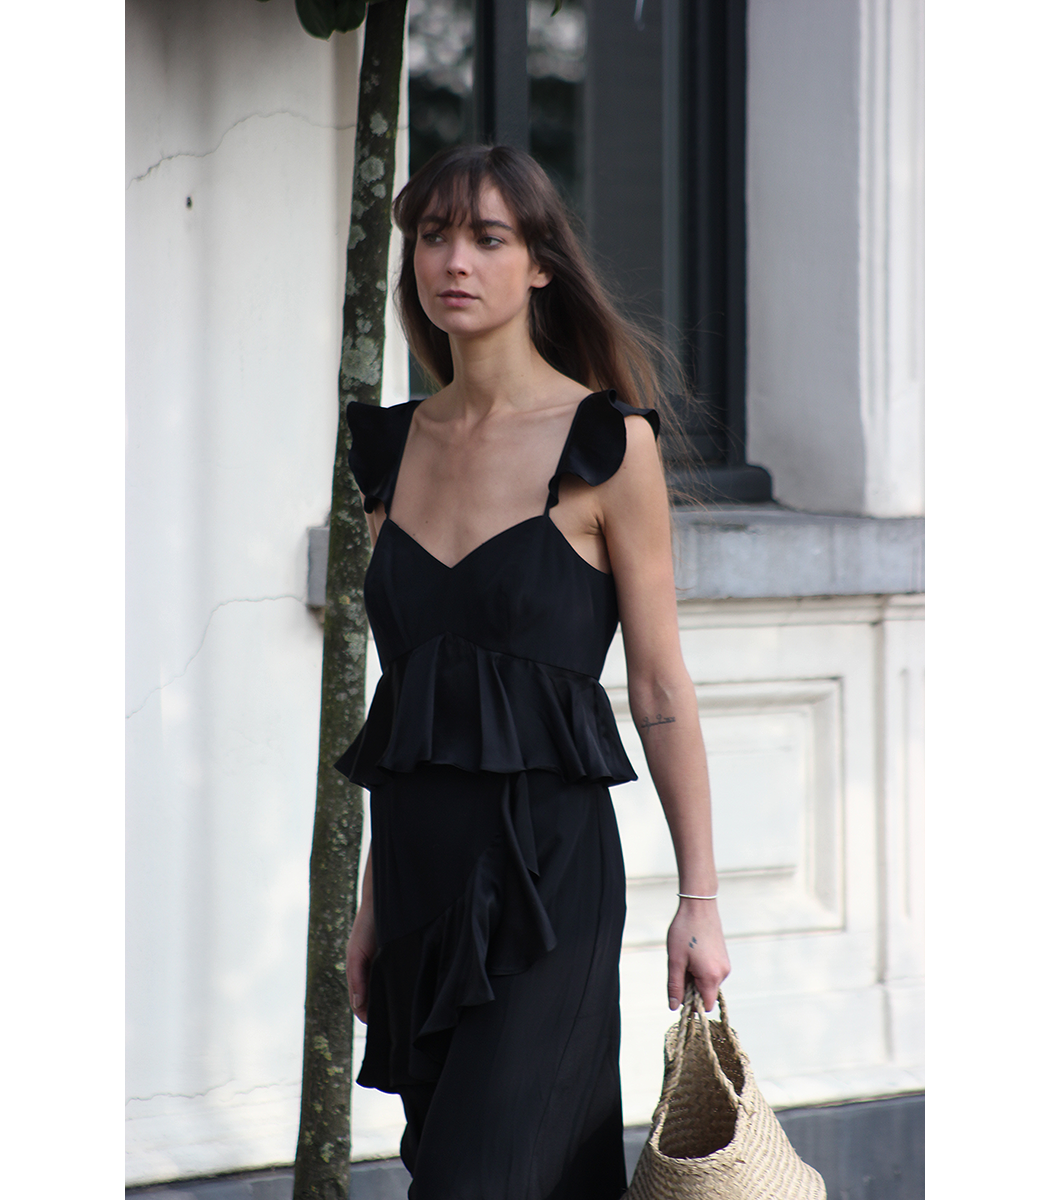 Amur Blake Silk Midi Dress - Gucci Loafer - Modedamour 2.png